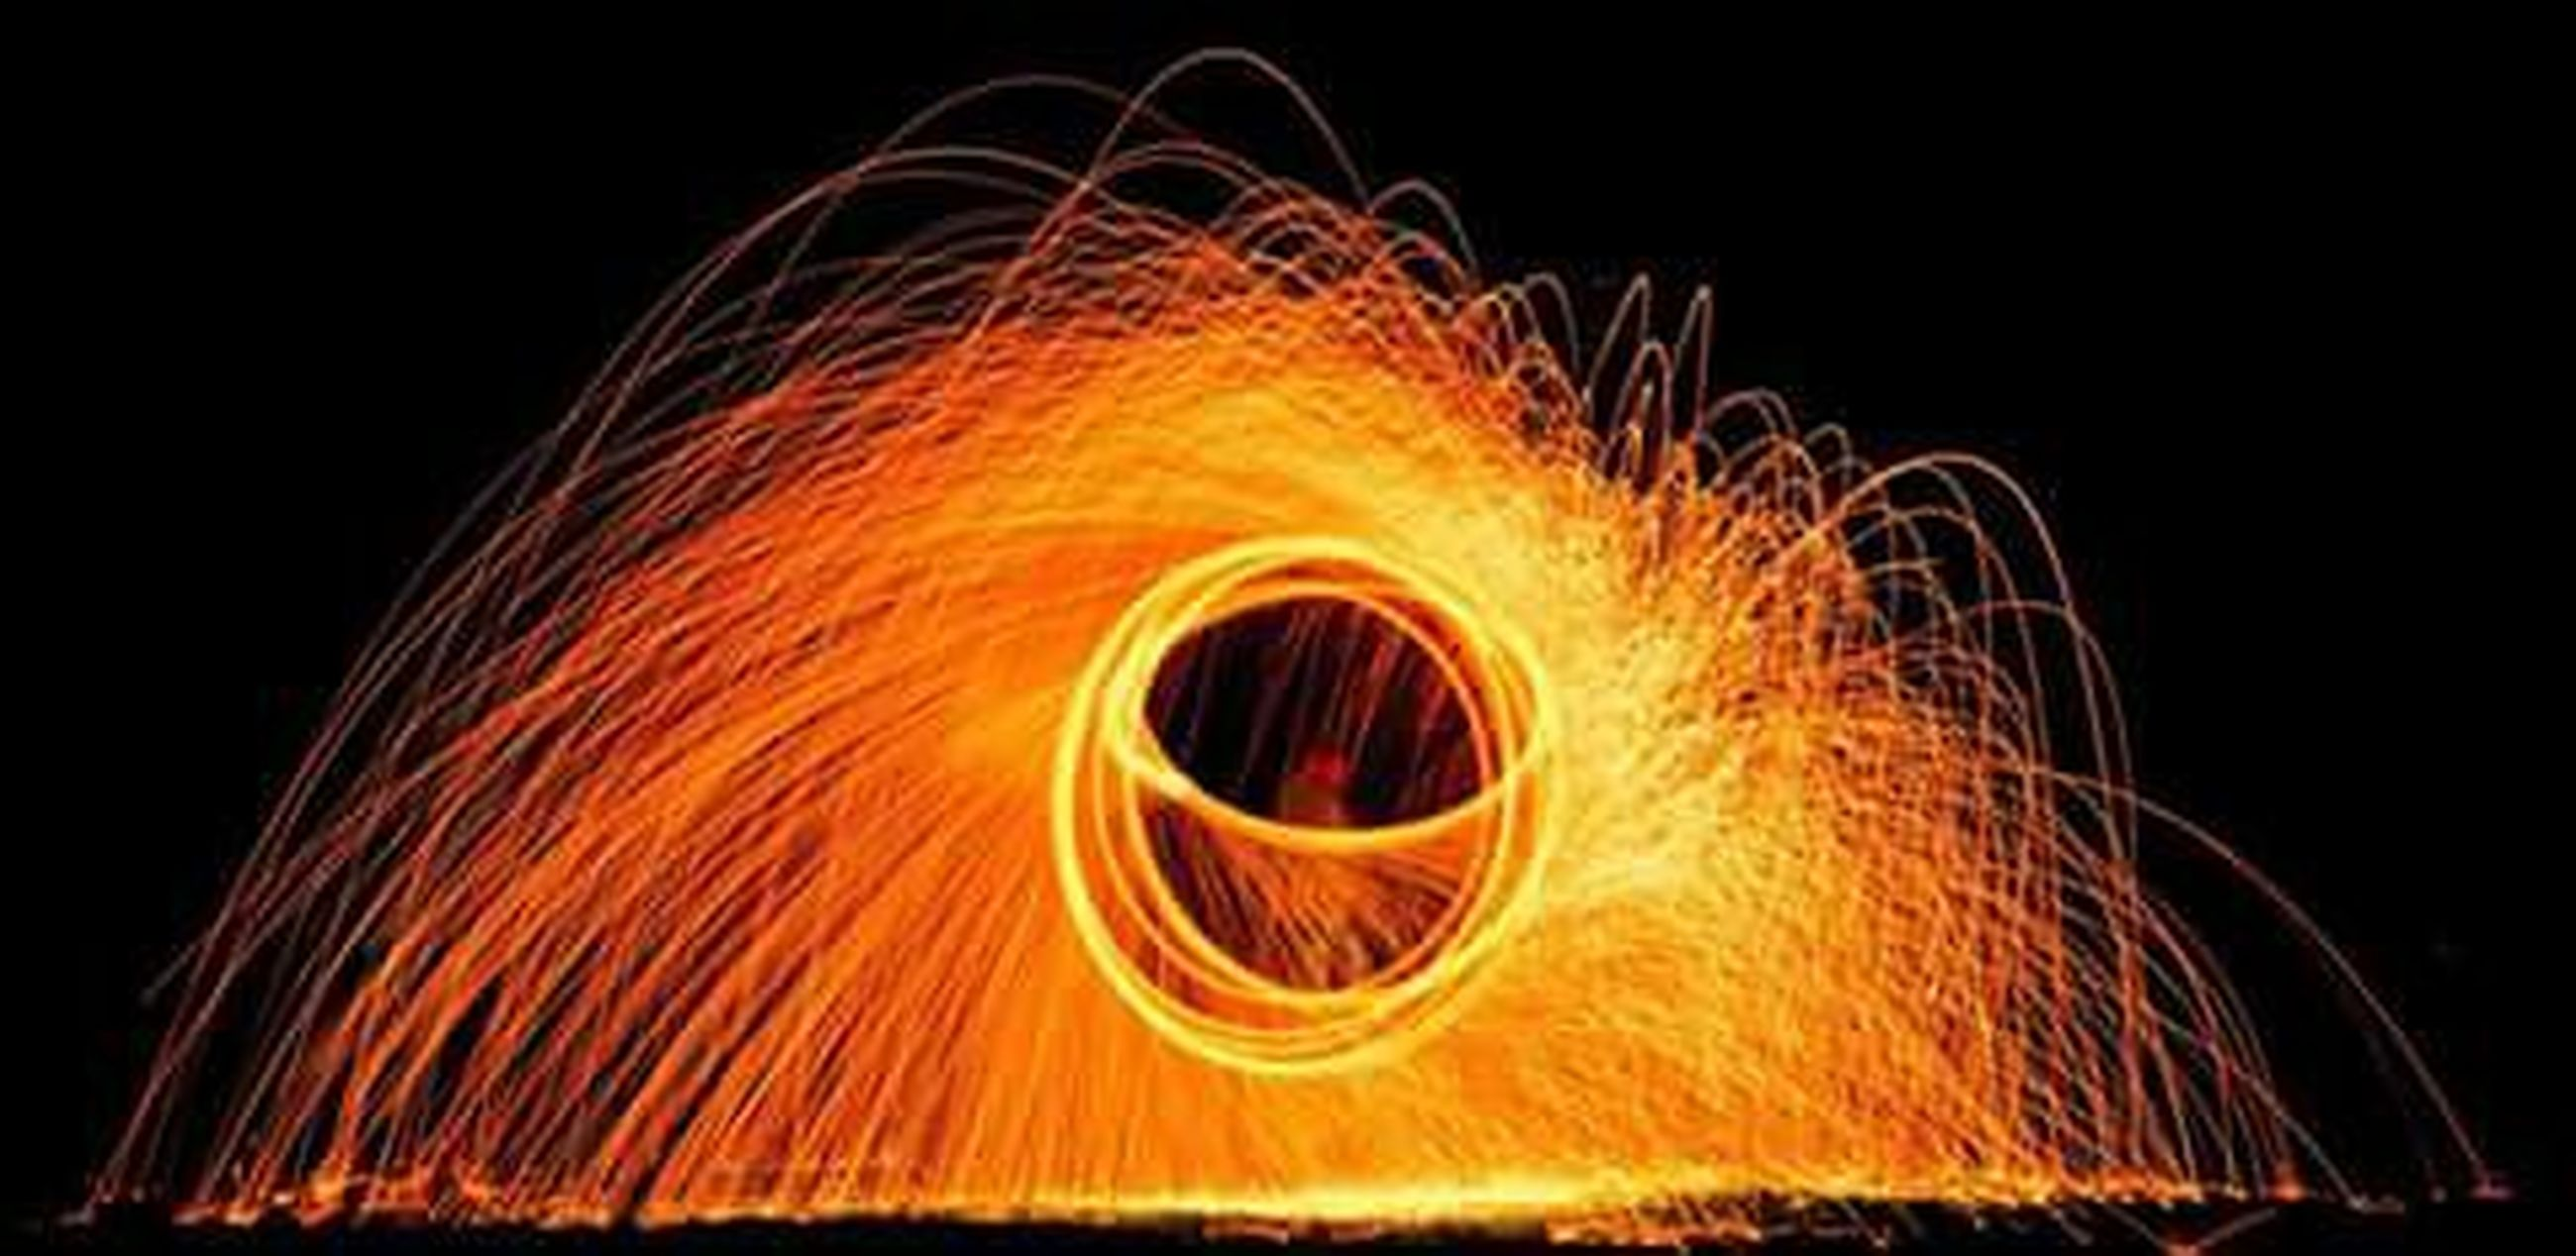 long exposure, night, motion, illuminated, blurred motion, glowing, light trail, sparks, light painting, fire - natural phenomenon, spinning, firework display, exploding, arts culture and entertainment, speed, wire wool, multi colored, firework - man made object, celebration, abstract